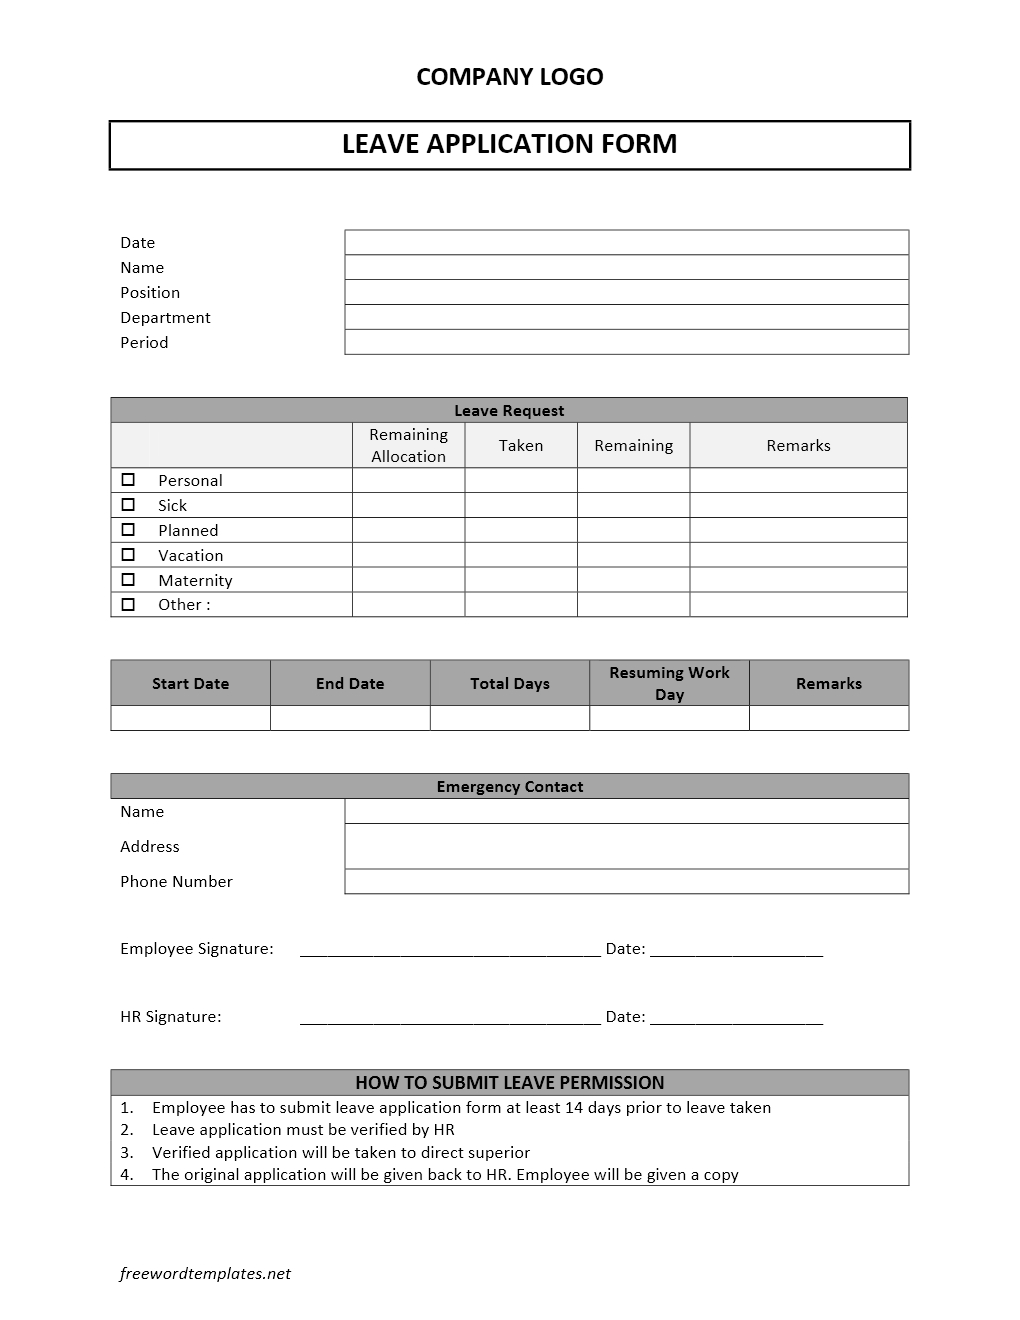 Leave application form model 2g leave application form template model 2 altavistaventures Image collections